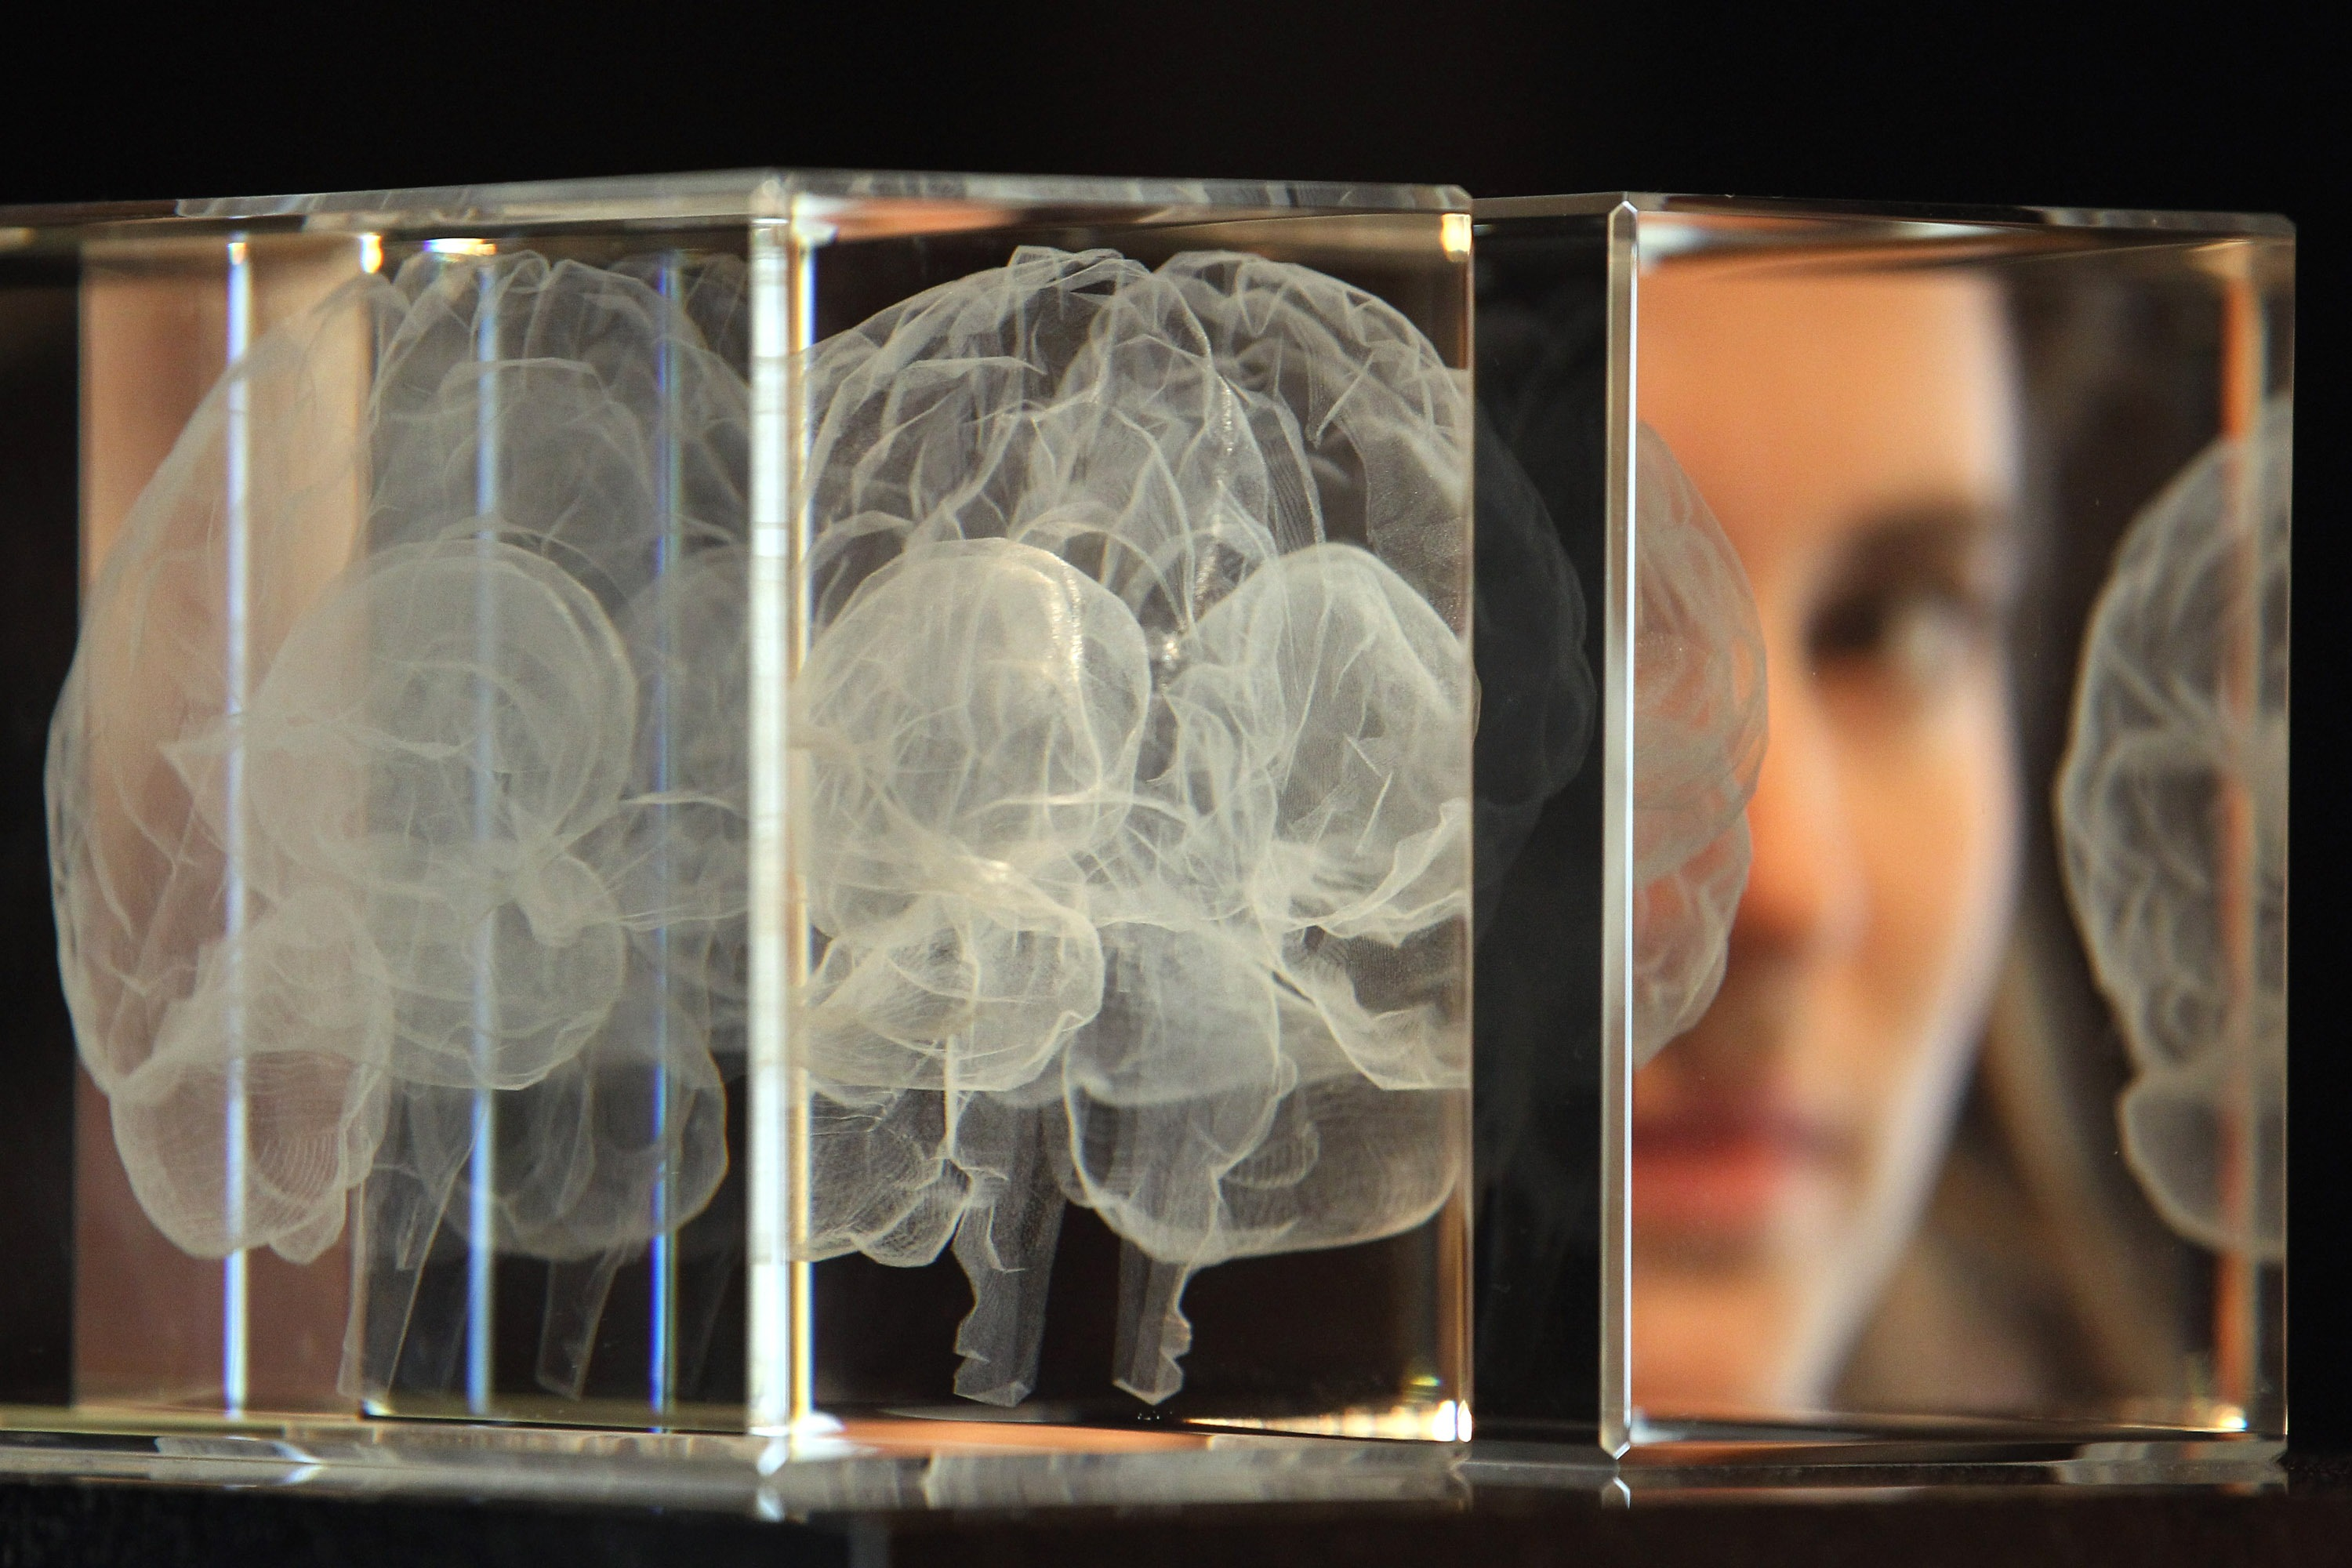 A visualization of a brain and a person's reflection in a mirror.